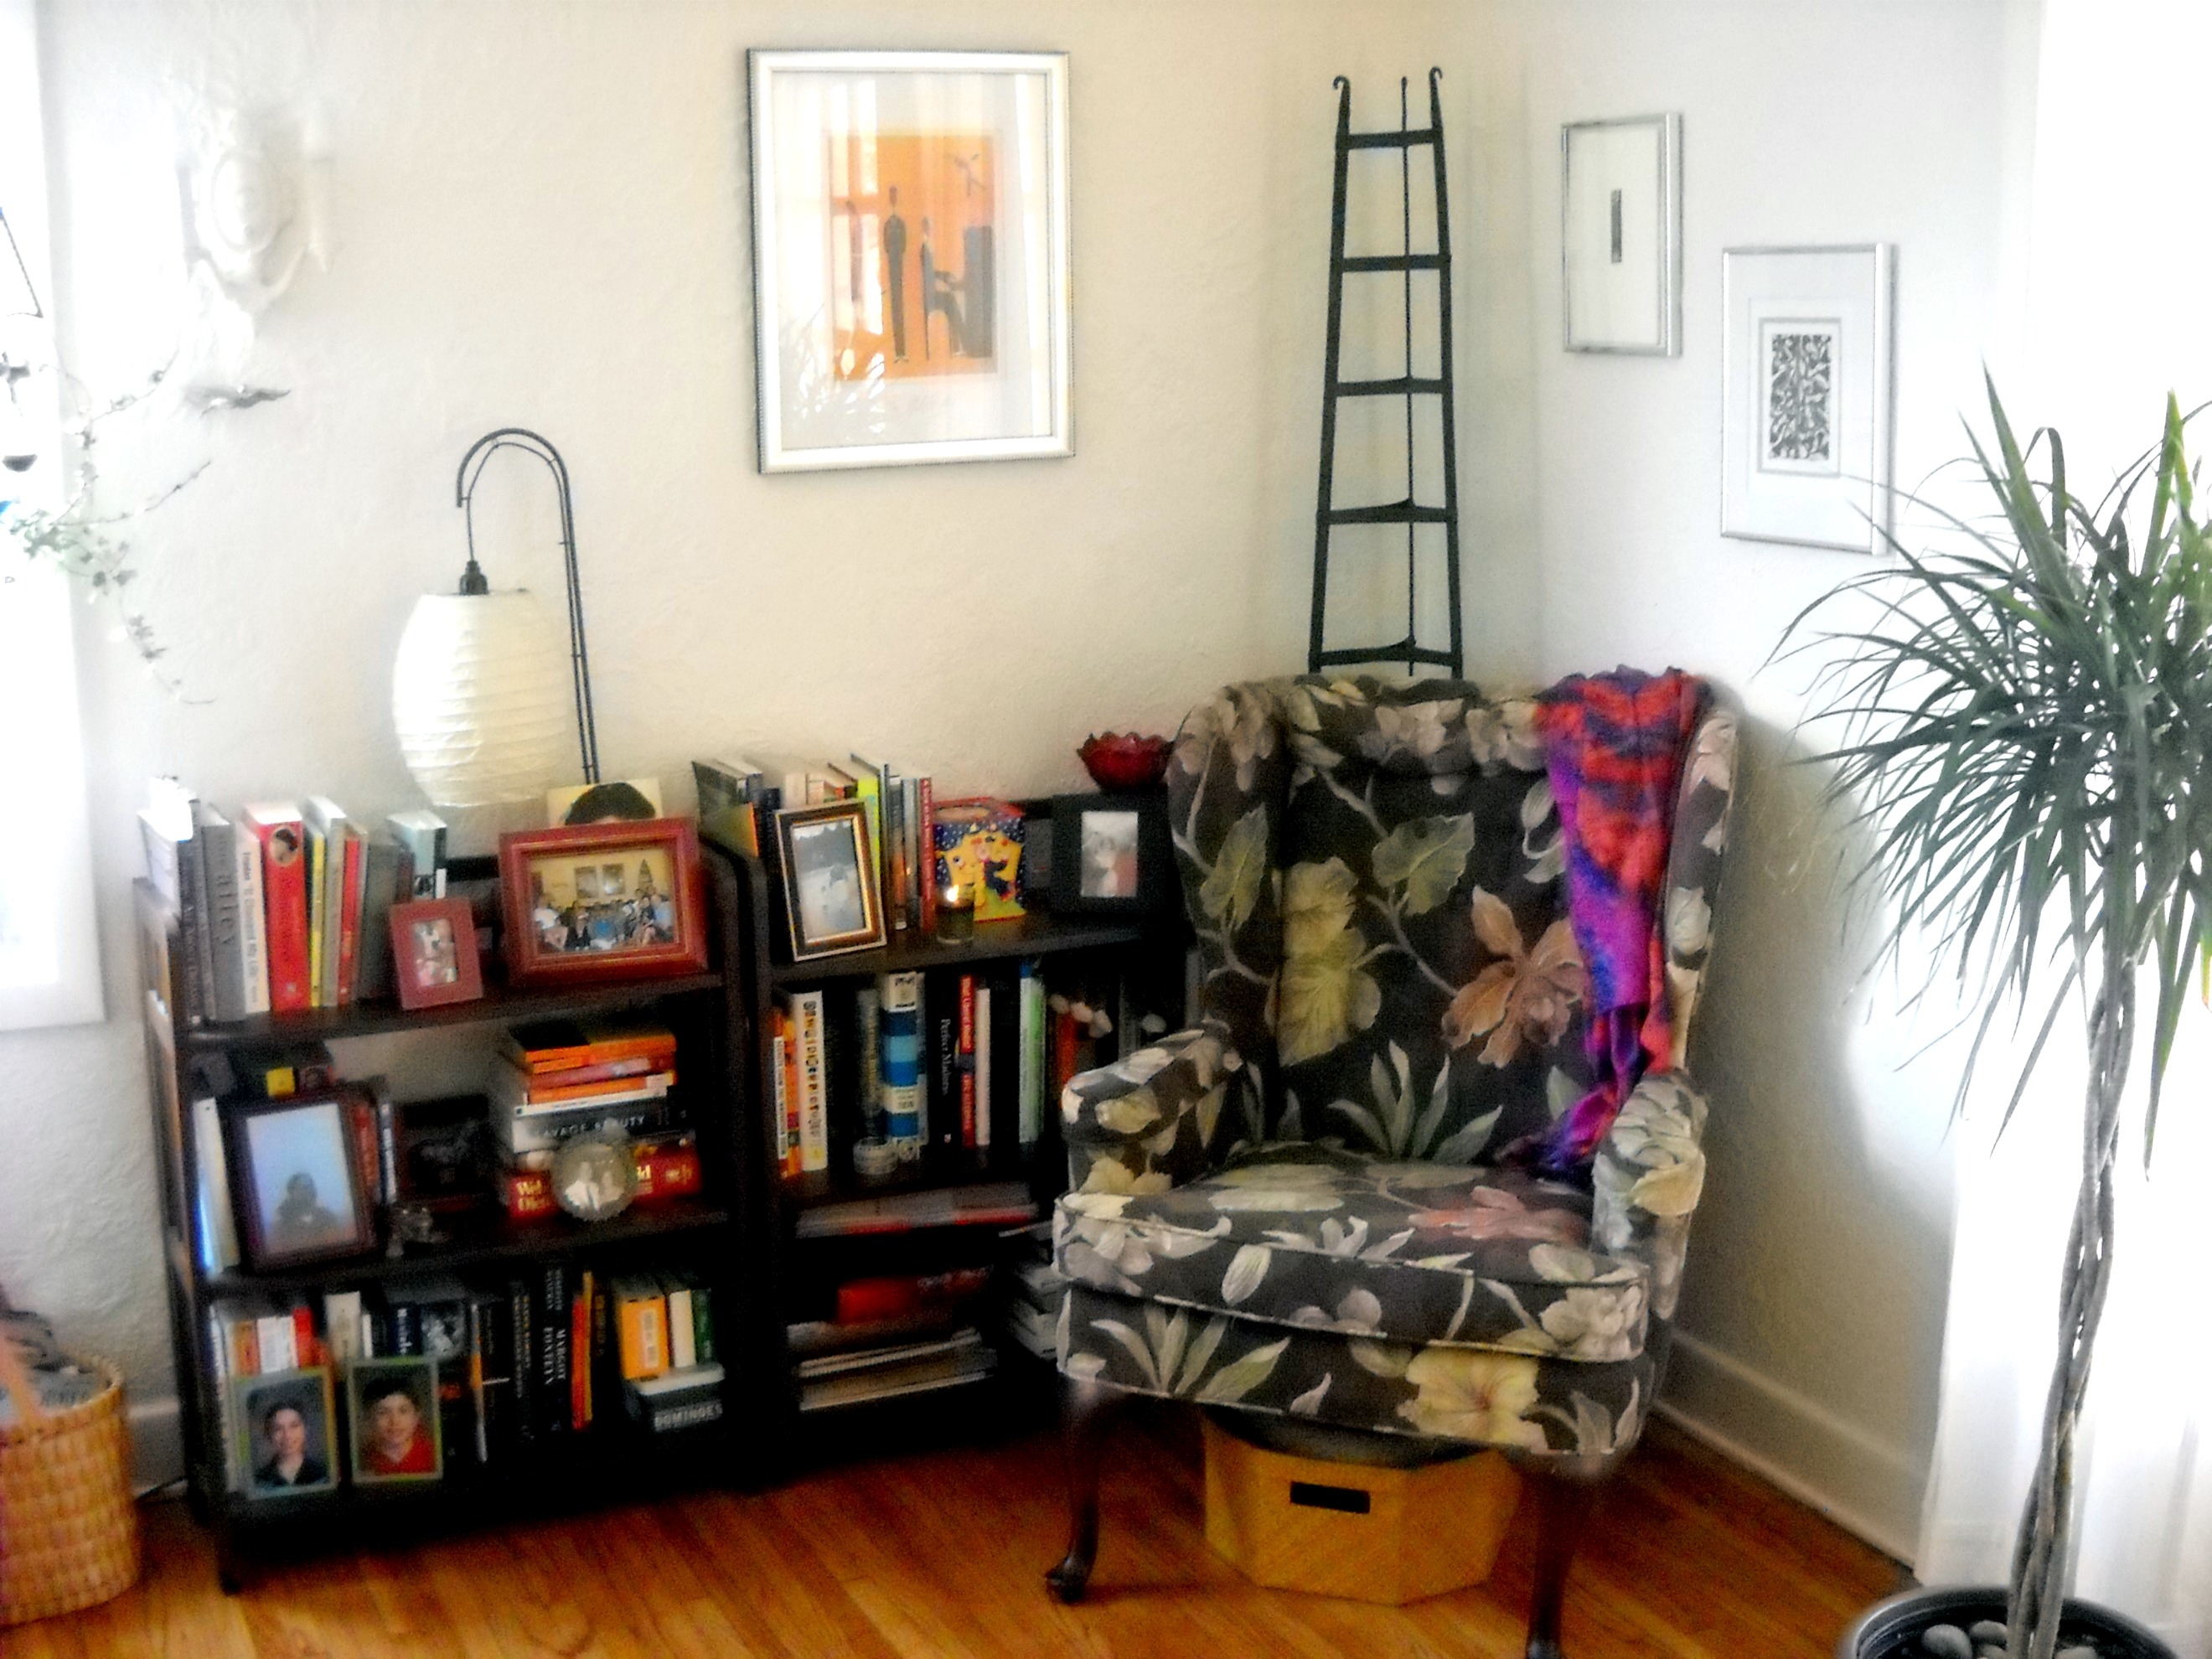 Road trip Reading nook in living room